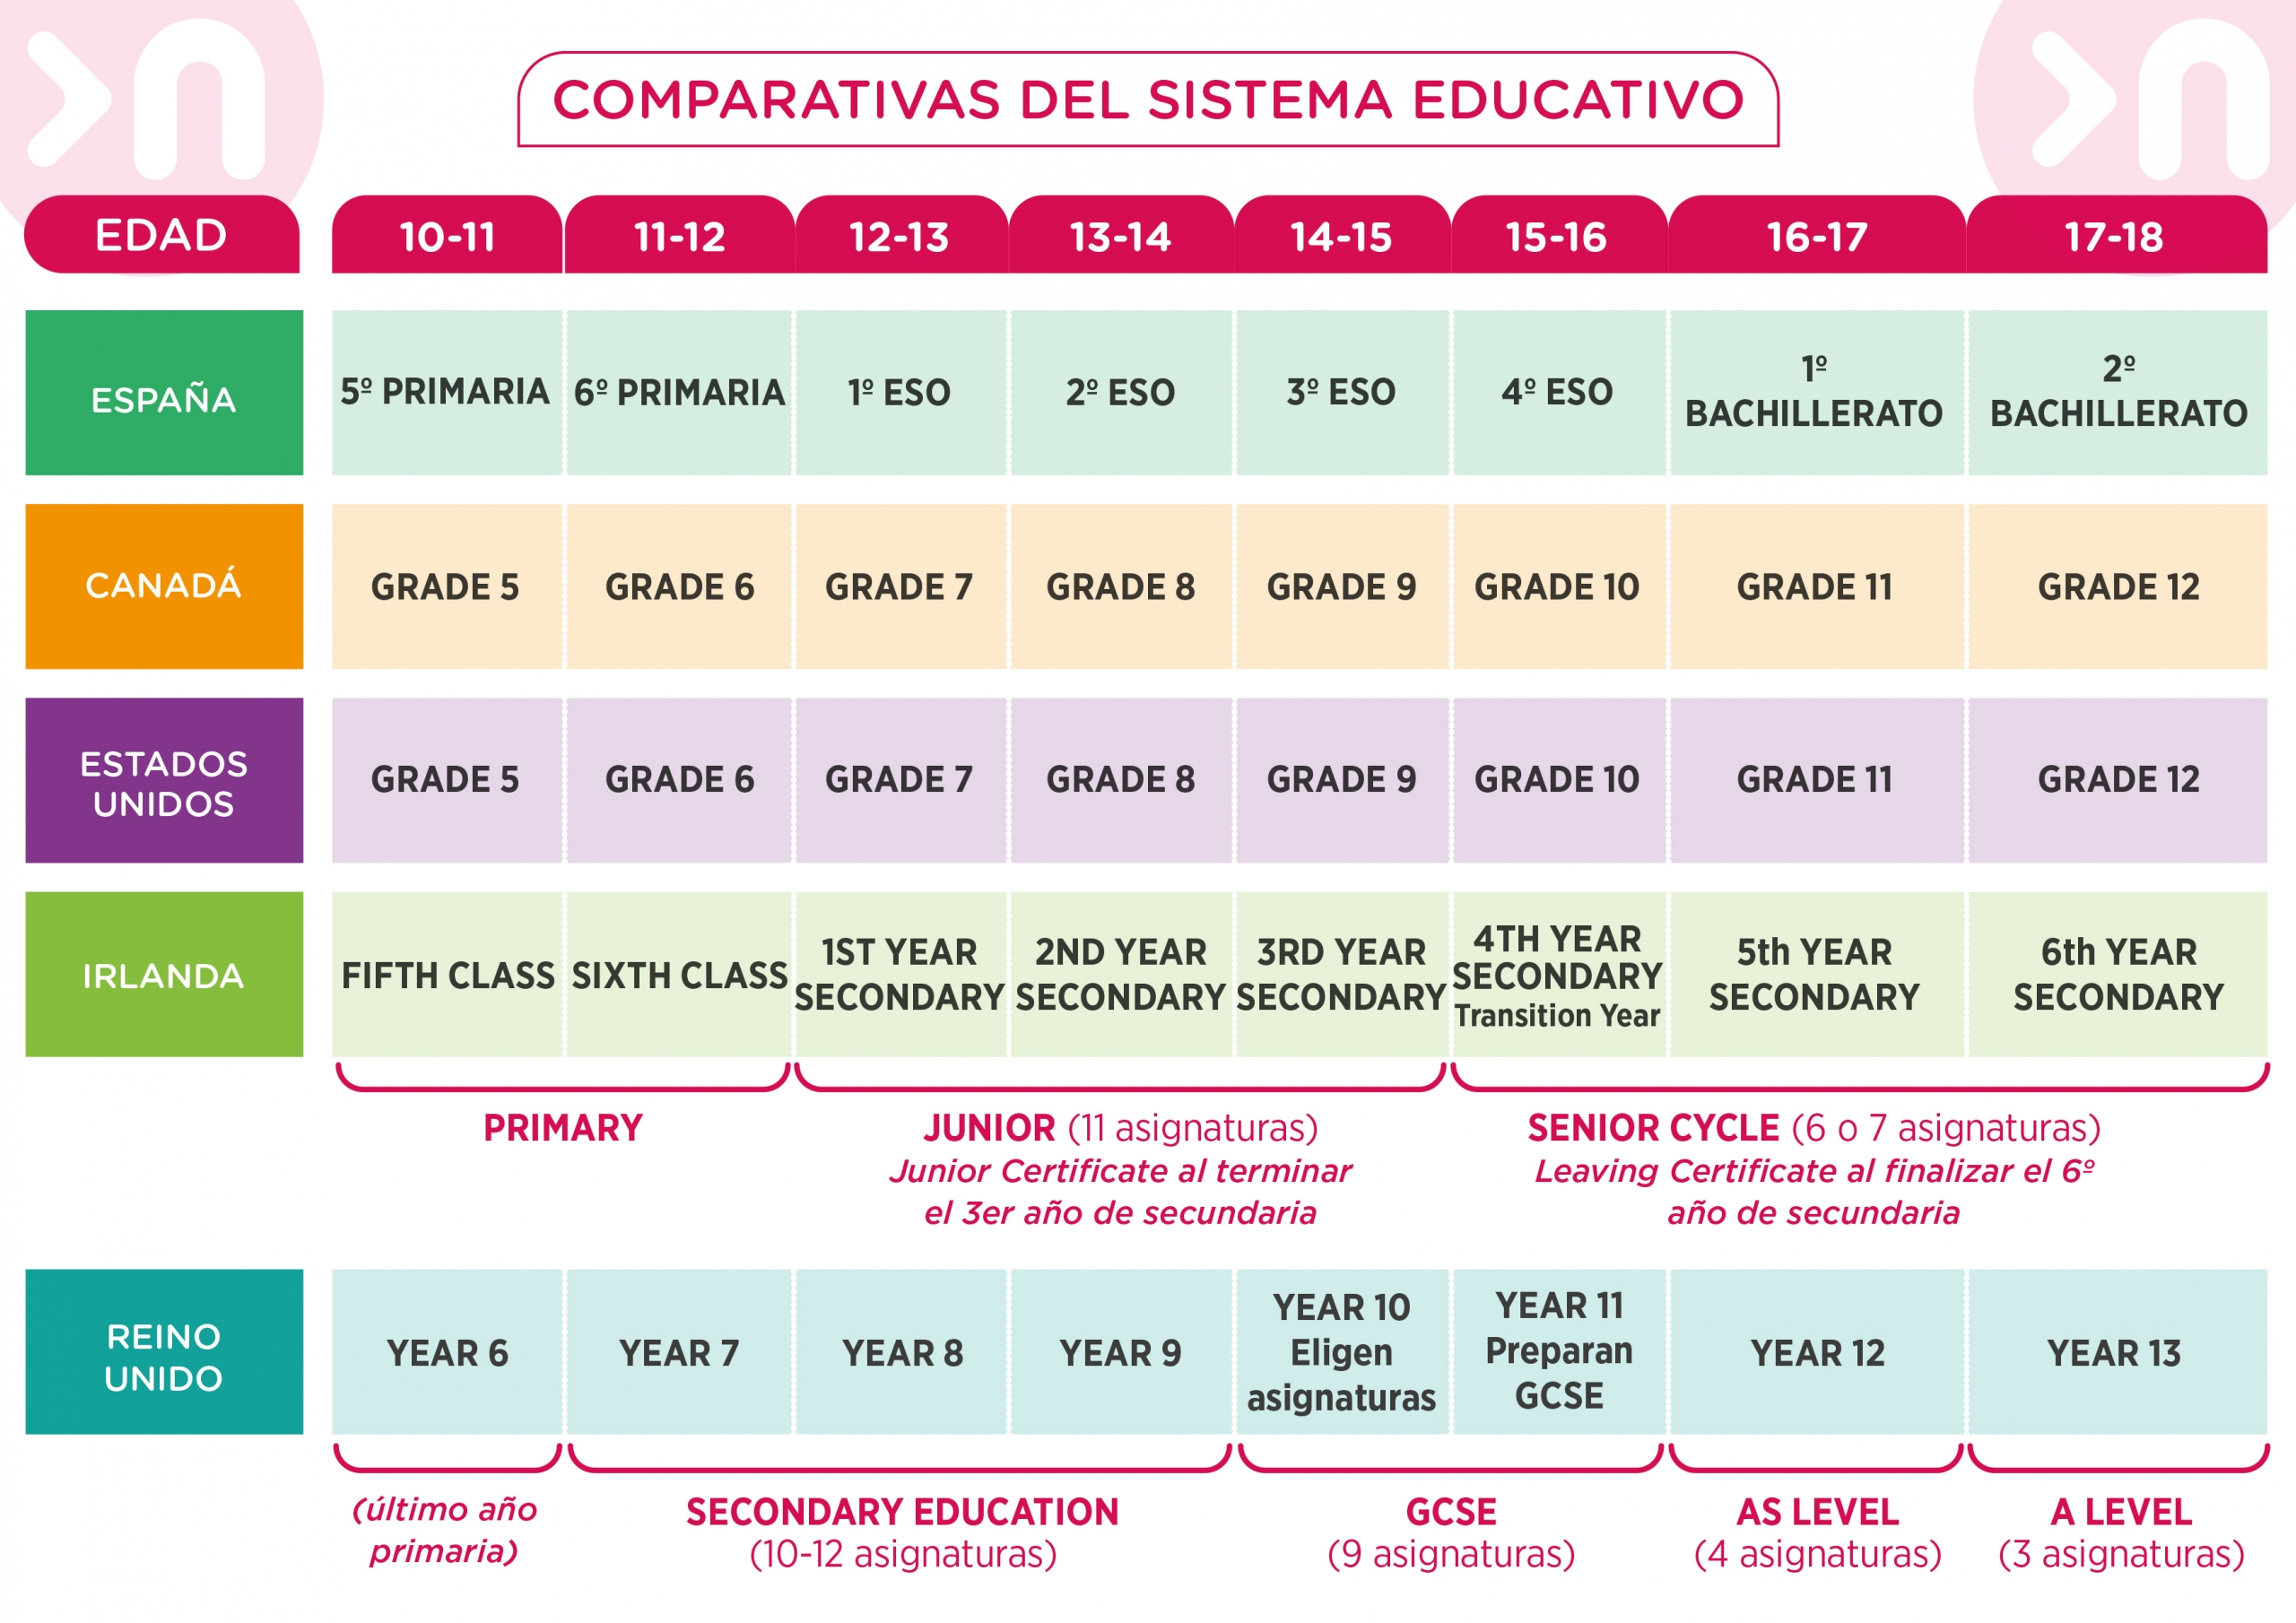 Comparativa-sistema-educativo